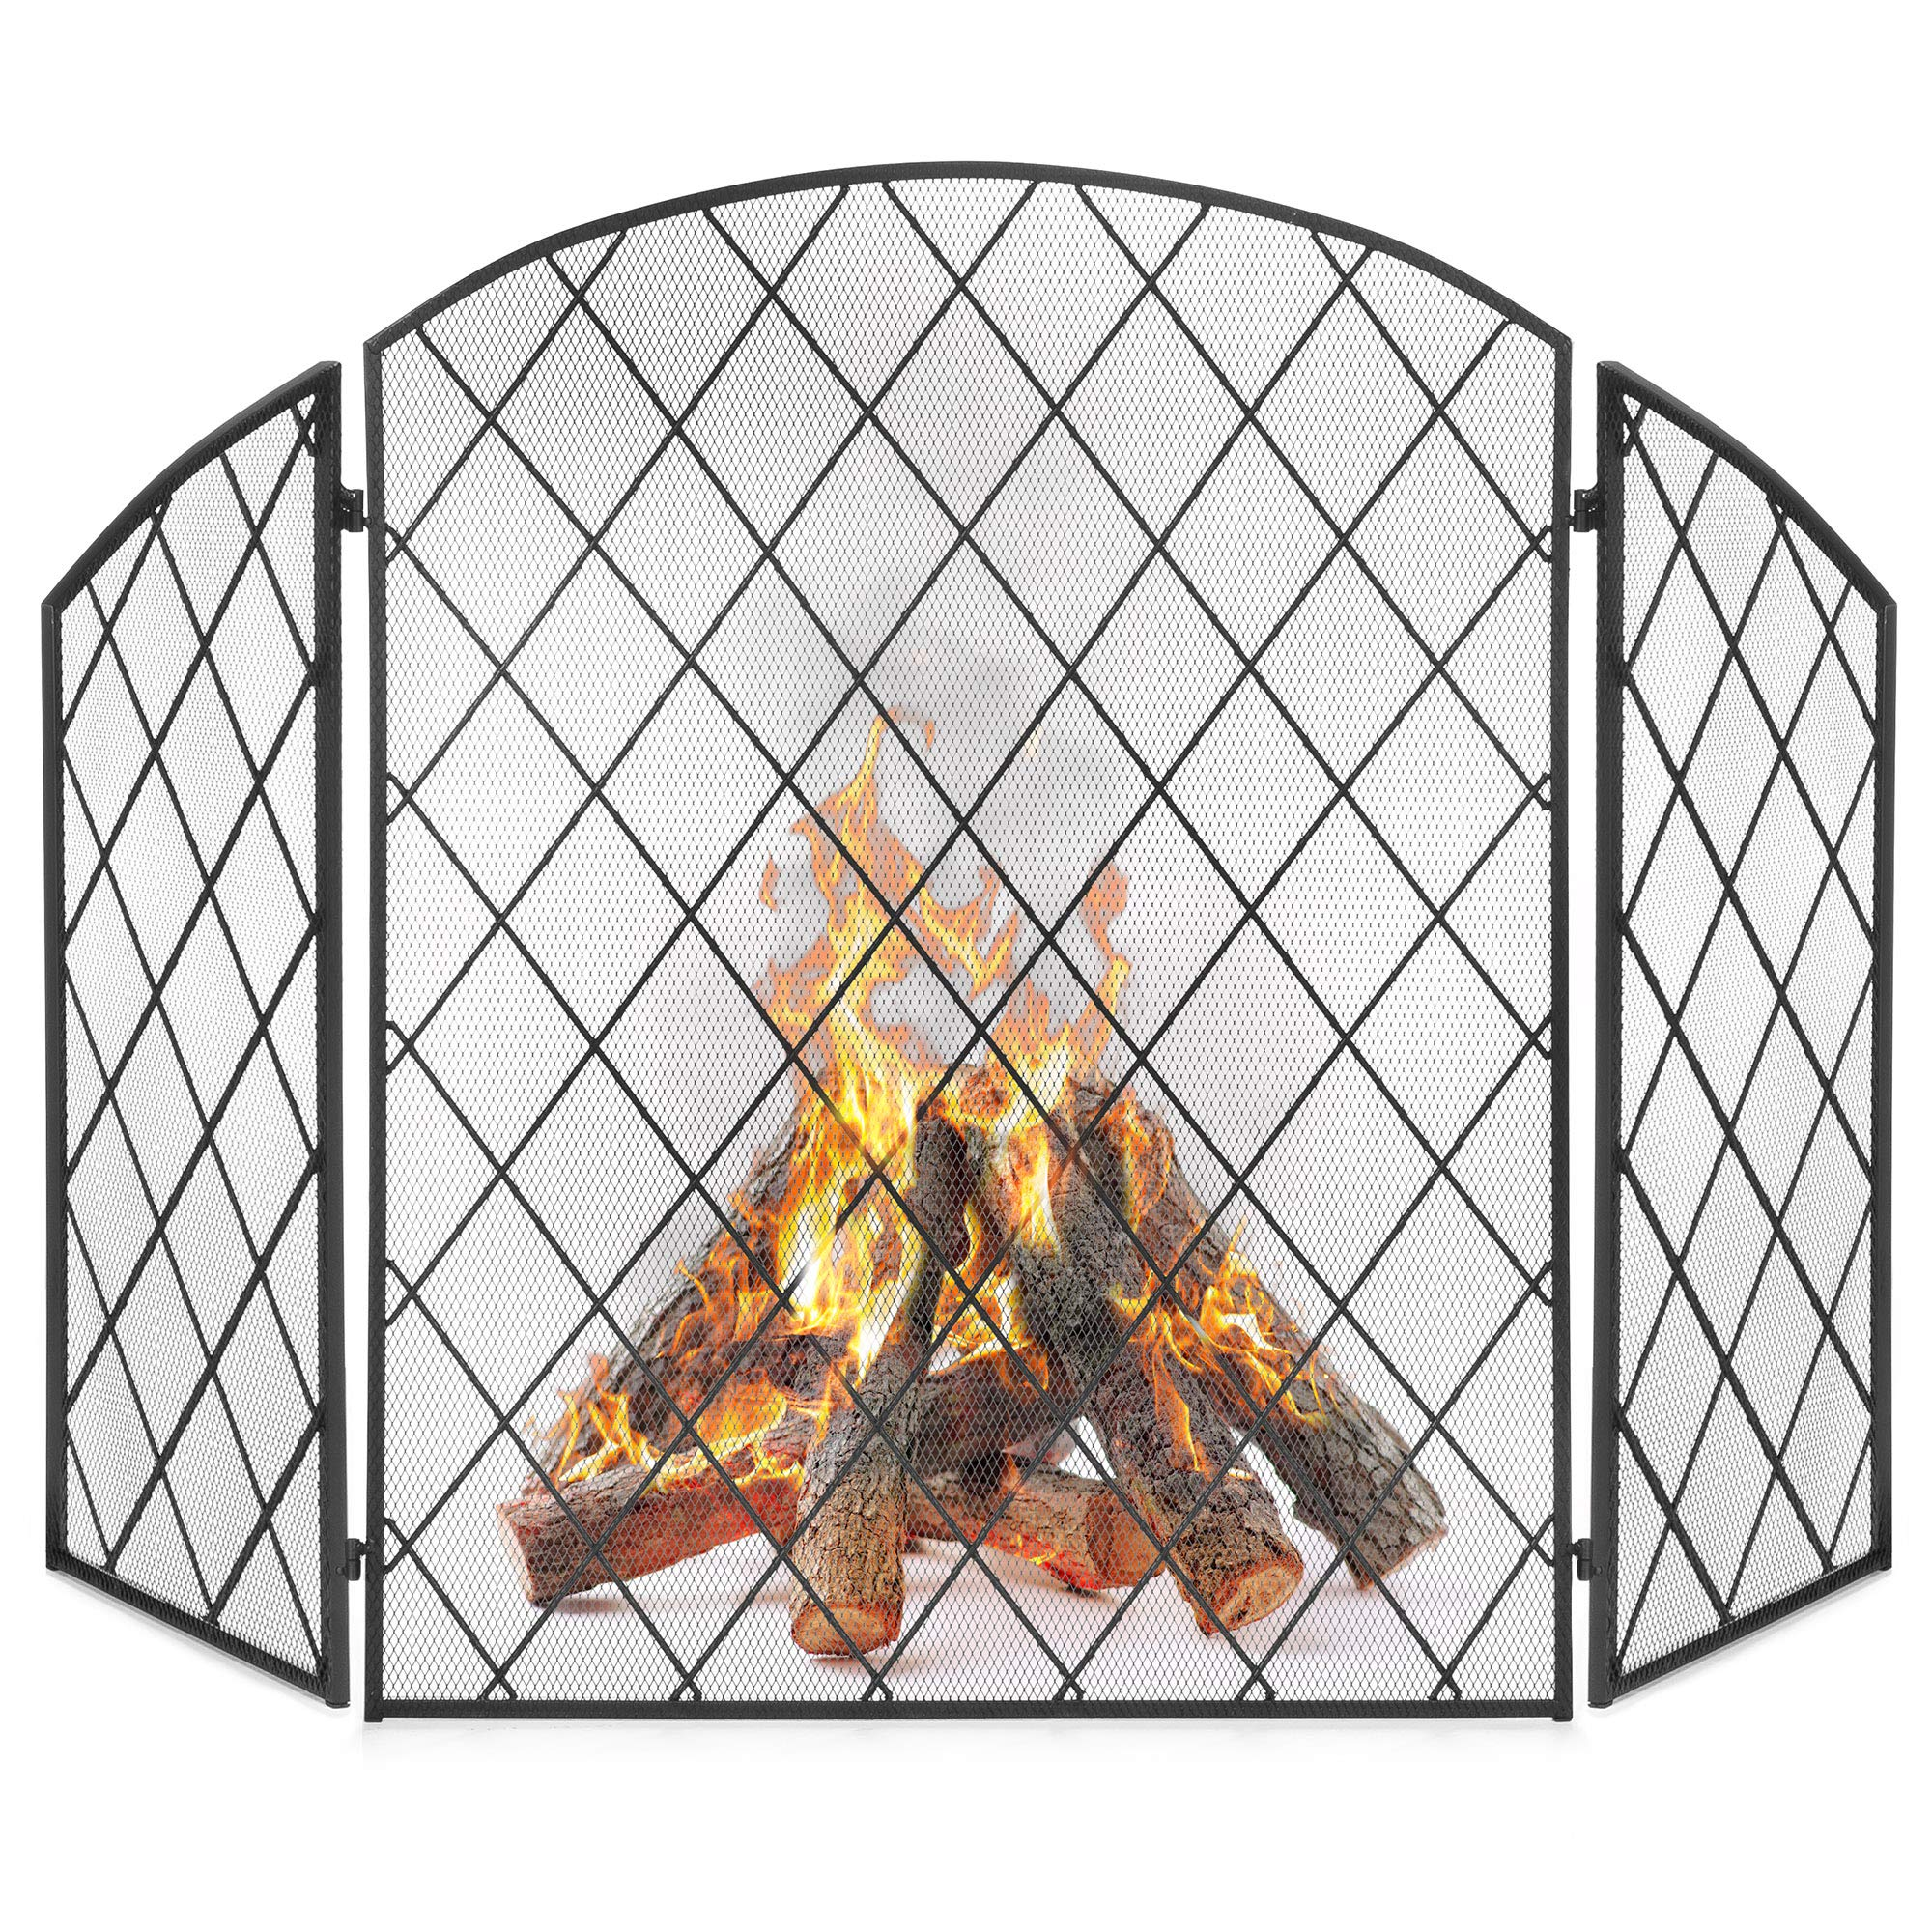 Best Choice Products 3-Panel 50x30in Wrought Iron Decorative Mesh Fireplace Screen Gate Protector, Fire Spark Guard for Indoor and Outdoor with Folding Side Panels, Black by Best Choice Products